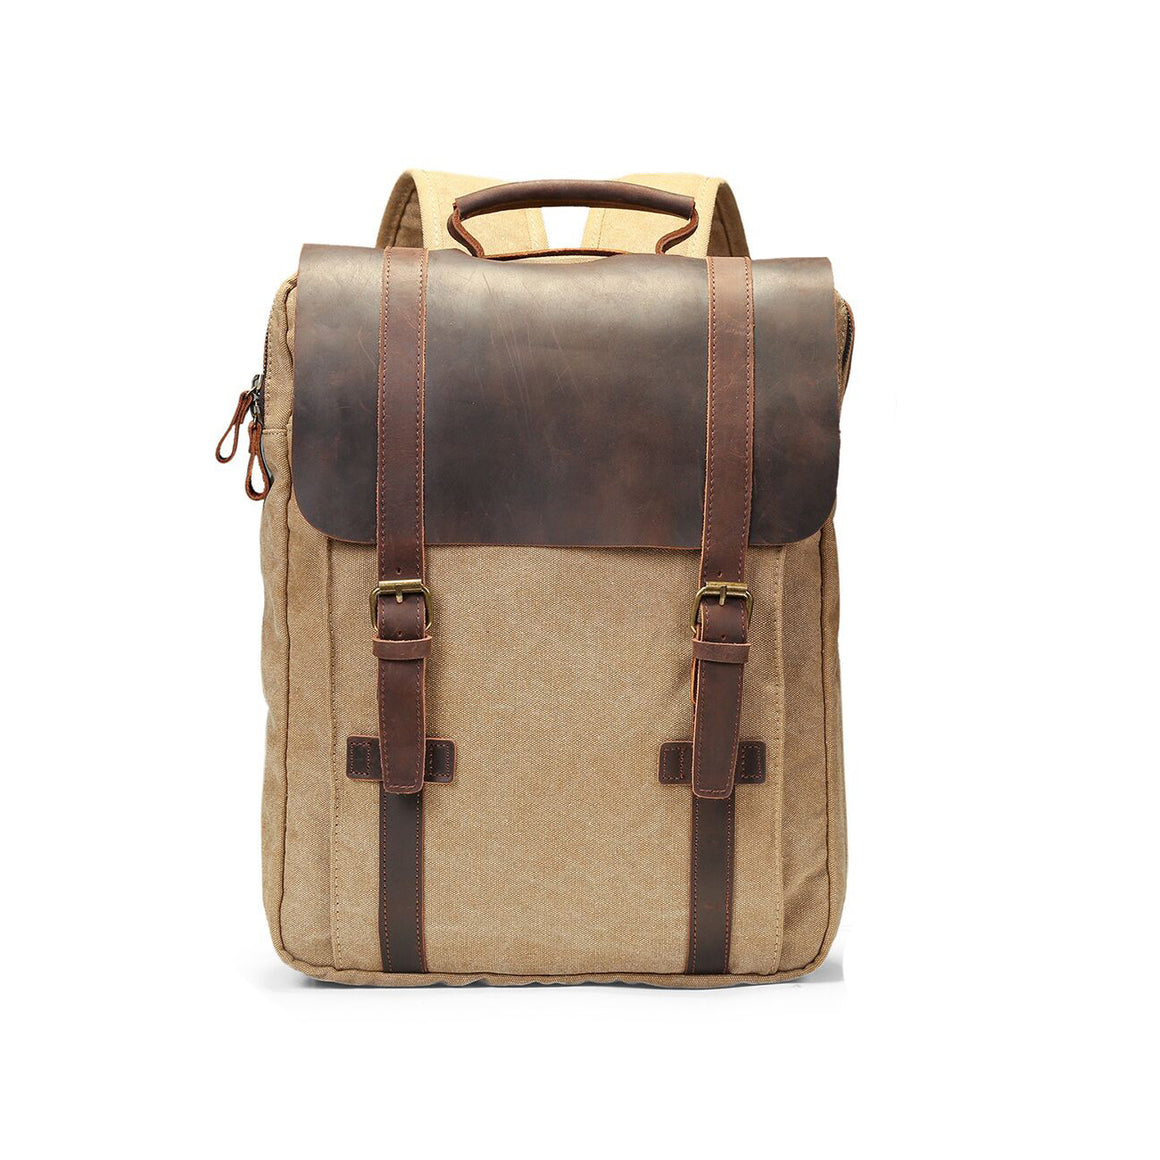 Rucksack Laptop Travel Bag - Capital Elements 2 Wellness and Fitness